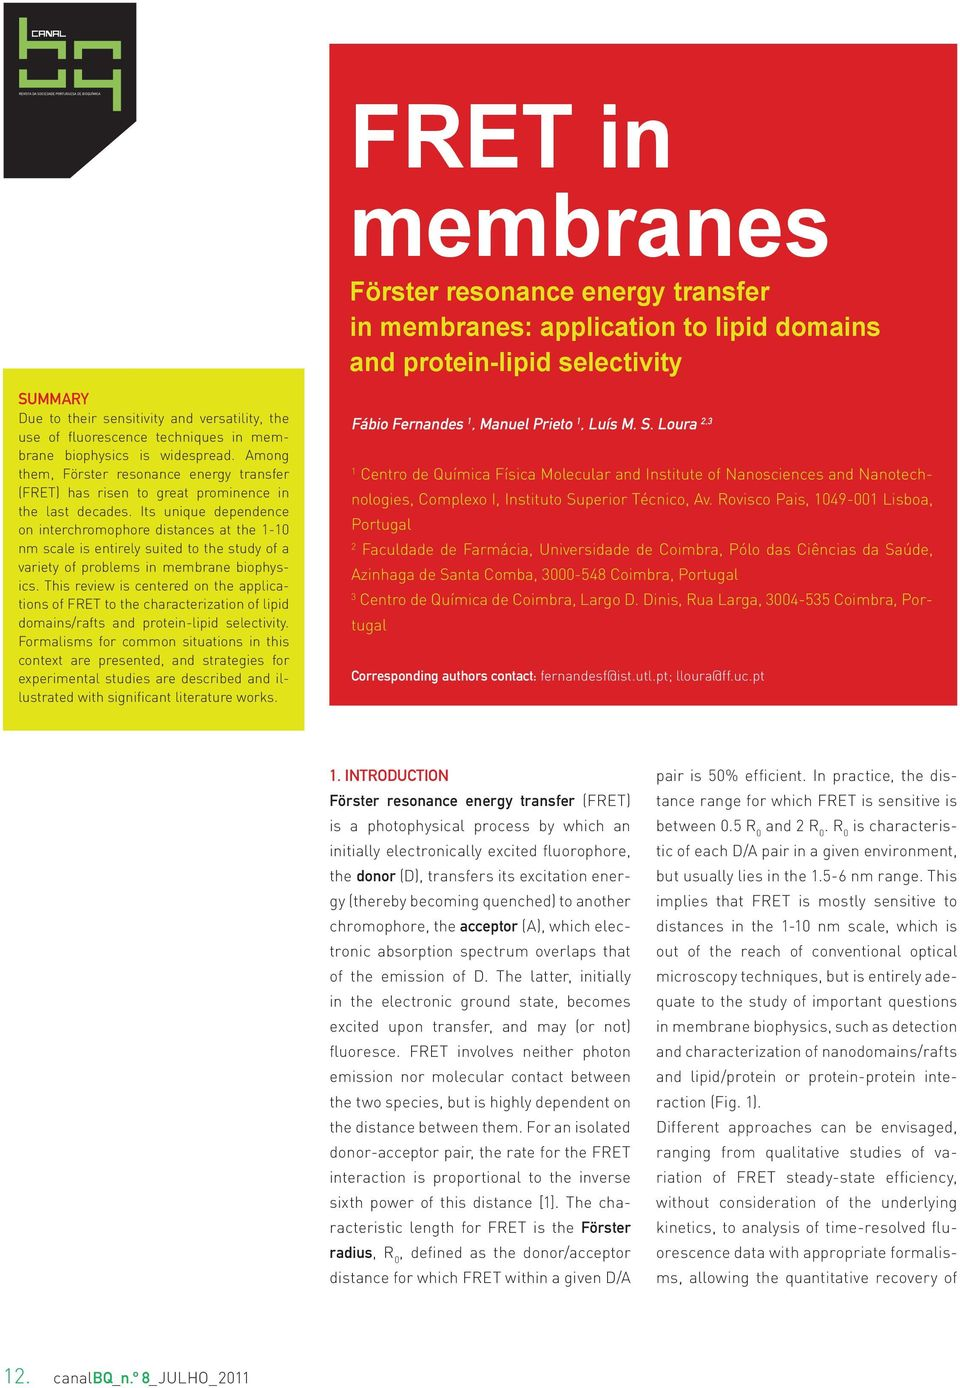 Its unique dependence on interchromophore distances at the 1-10 nm scale is entirely suited to the study of a variety of problems in membrane biophysics.